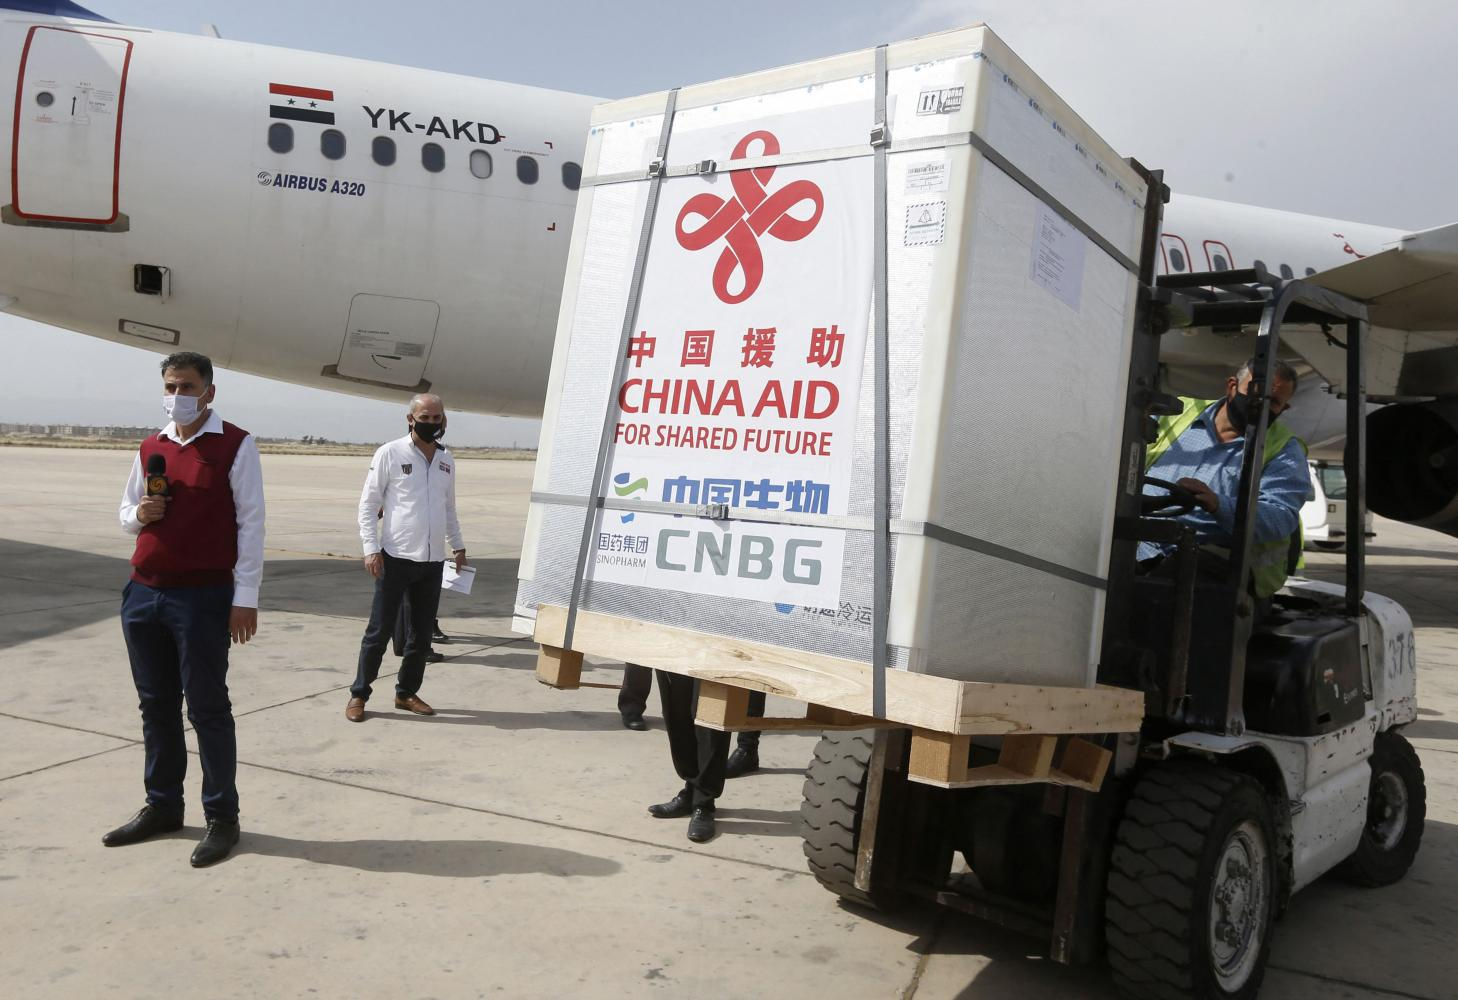 Workers unload boxes containing Sinopharm's Covid-19 vaccine, donated by China, at Damascus International Airport in April in the Syrian capital. Vaccine diplomacy can increase mutual respect, benefits and trust among nations.AFP